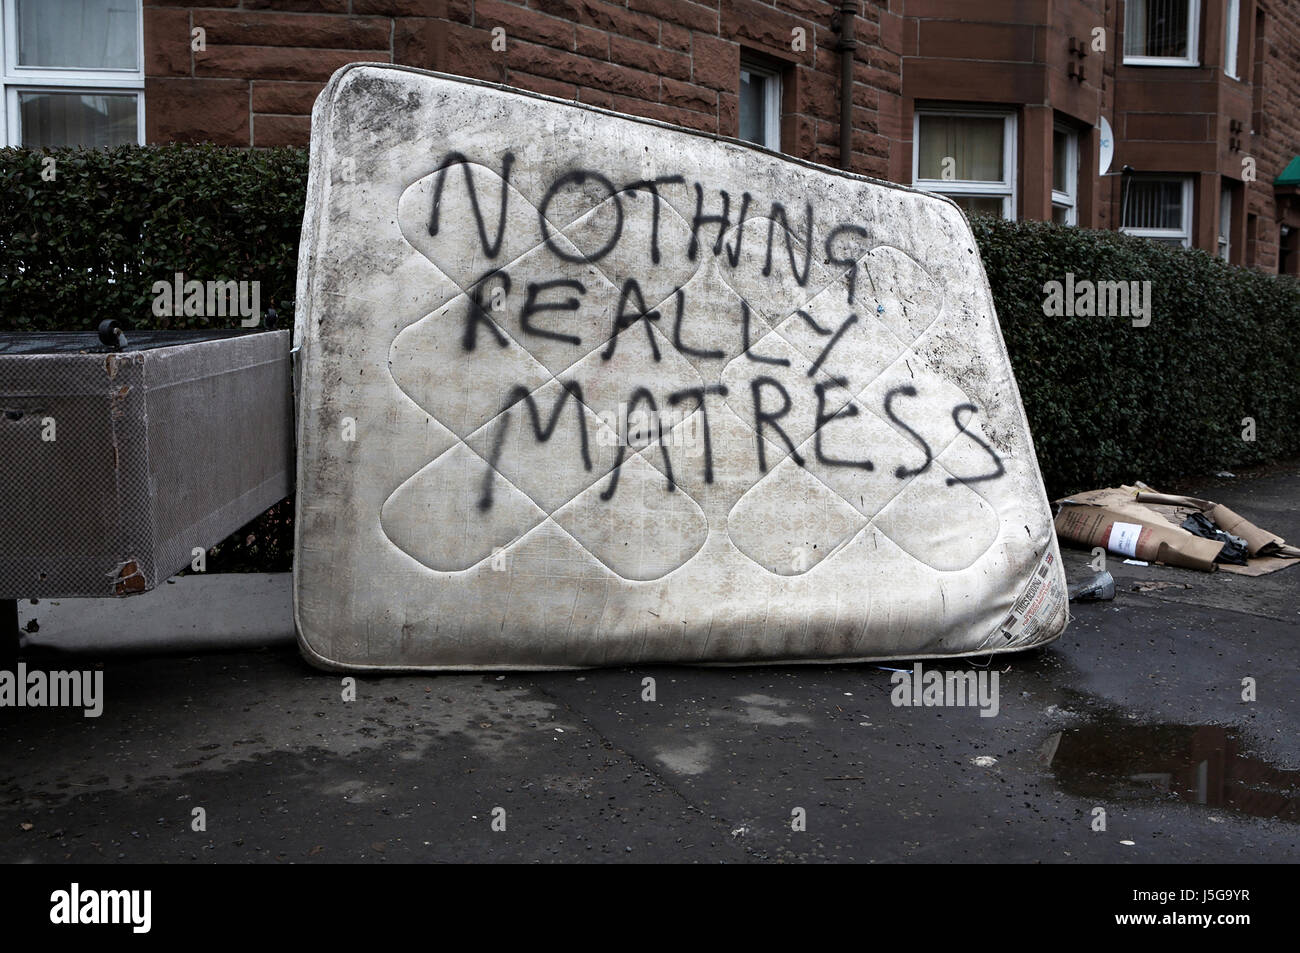 Abandoned Mattress in Glasgow, Scotland - Stock Image